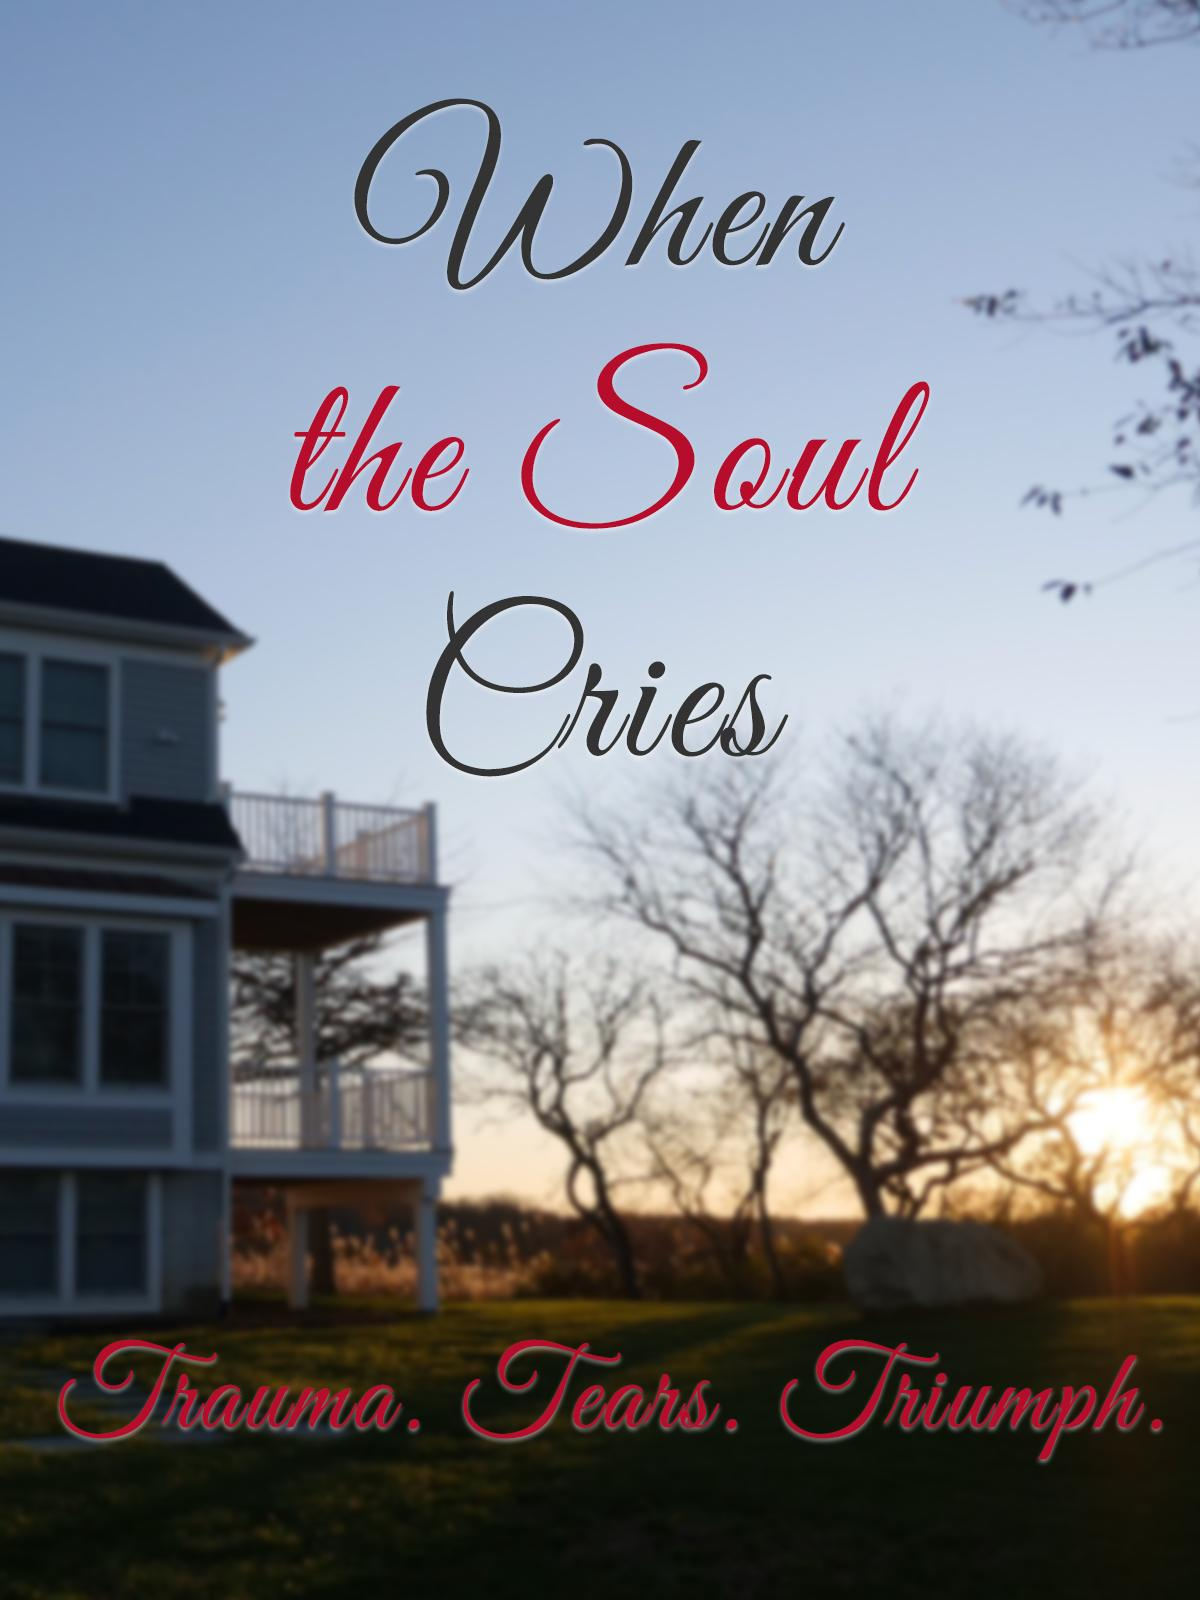 watch When the Soul Cries: Trauma. Tears. Triumph on soap2day